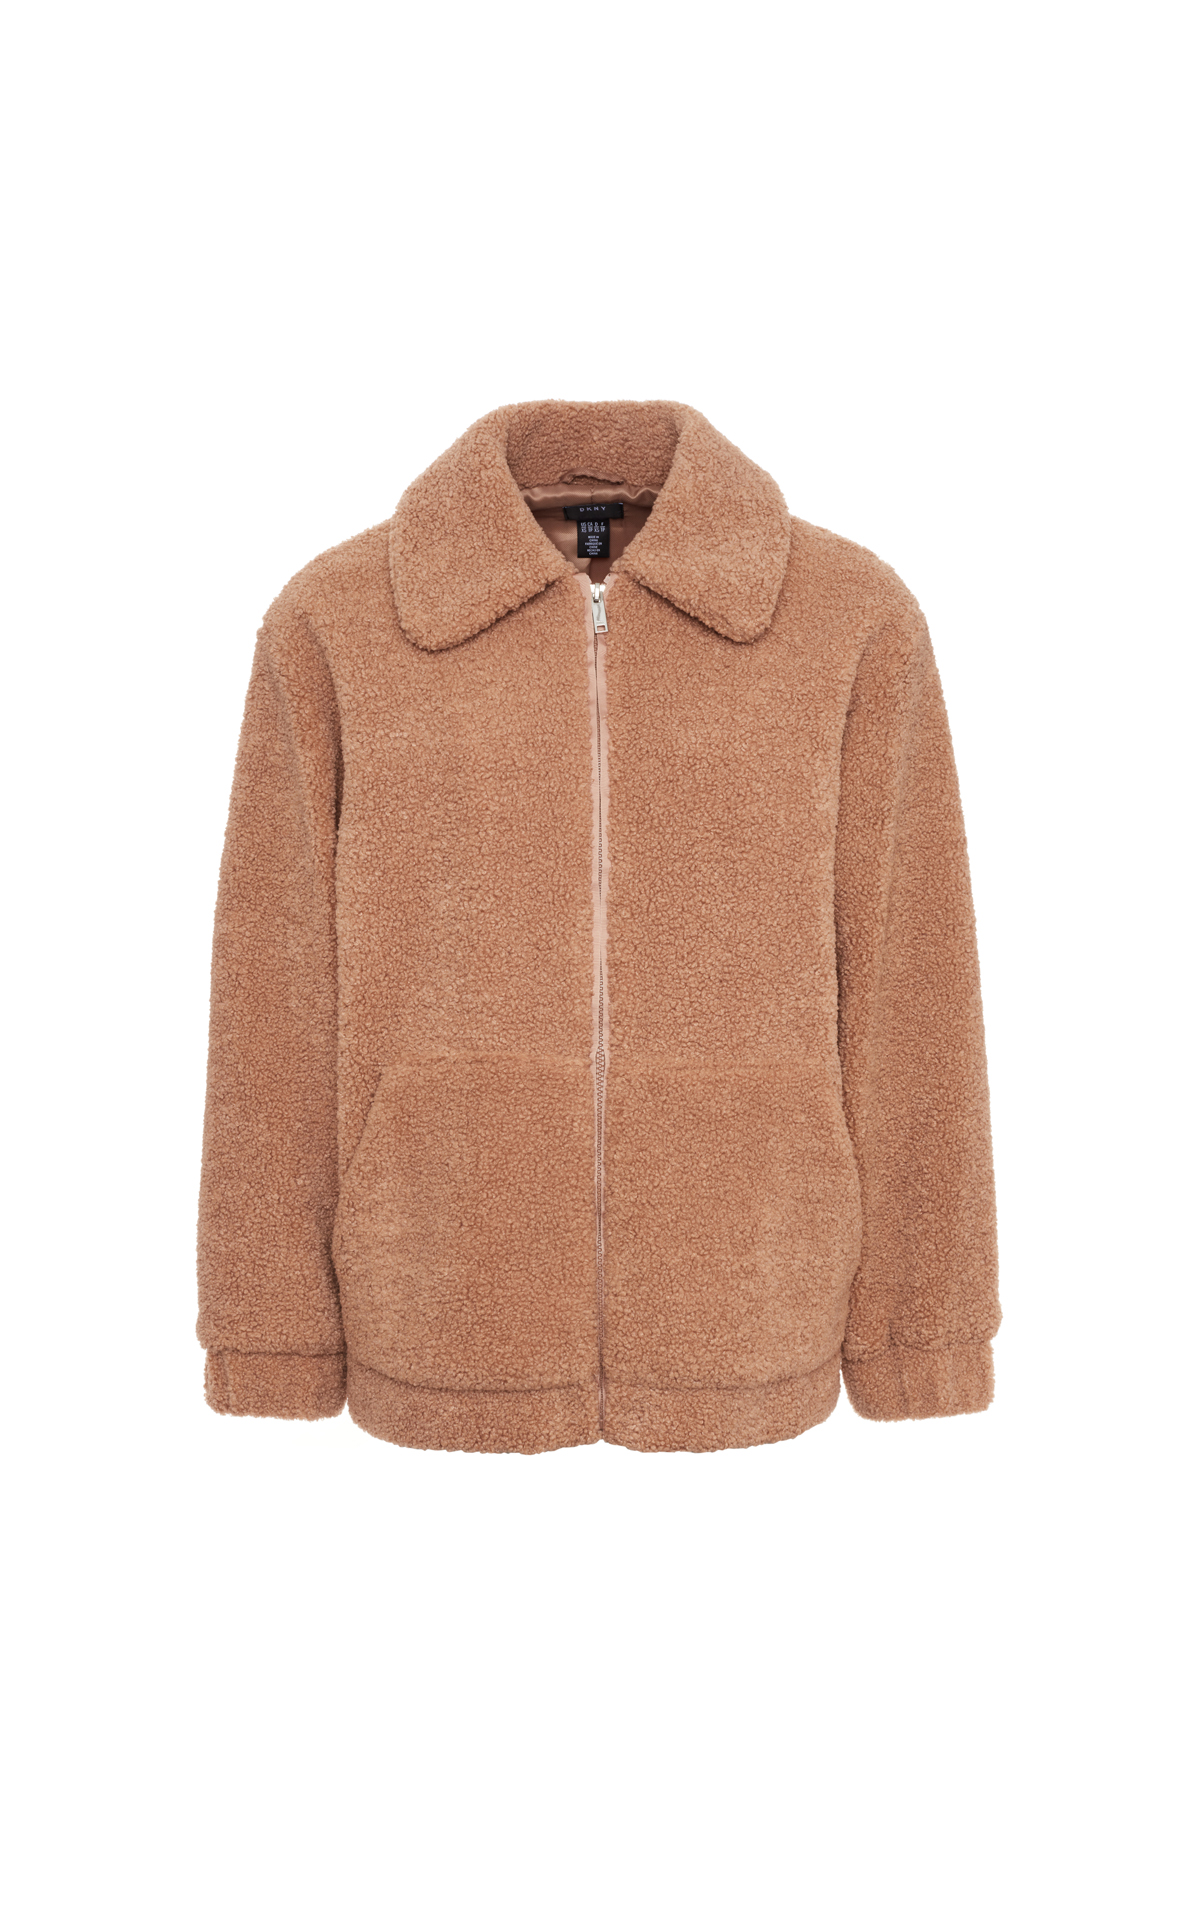 DKNY  Teddy bear jacket from Bicester Village